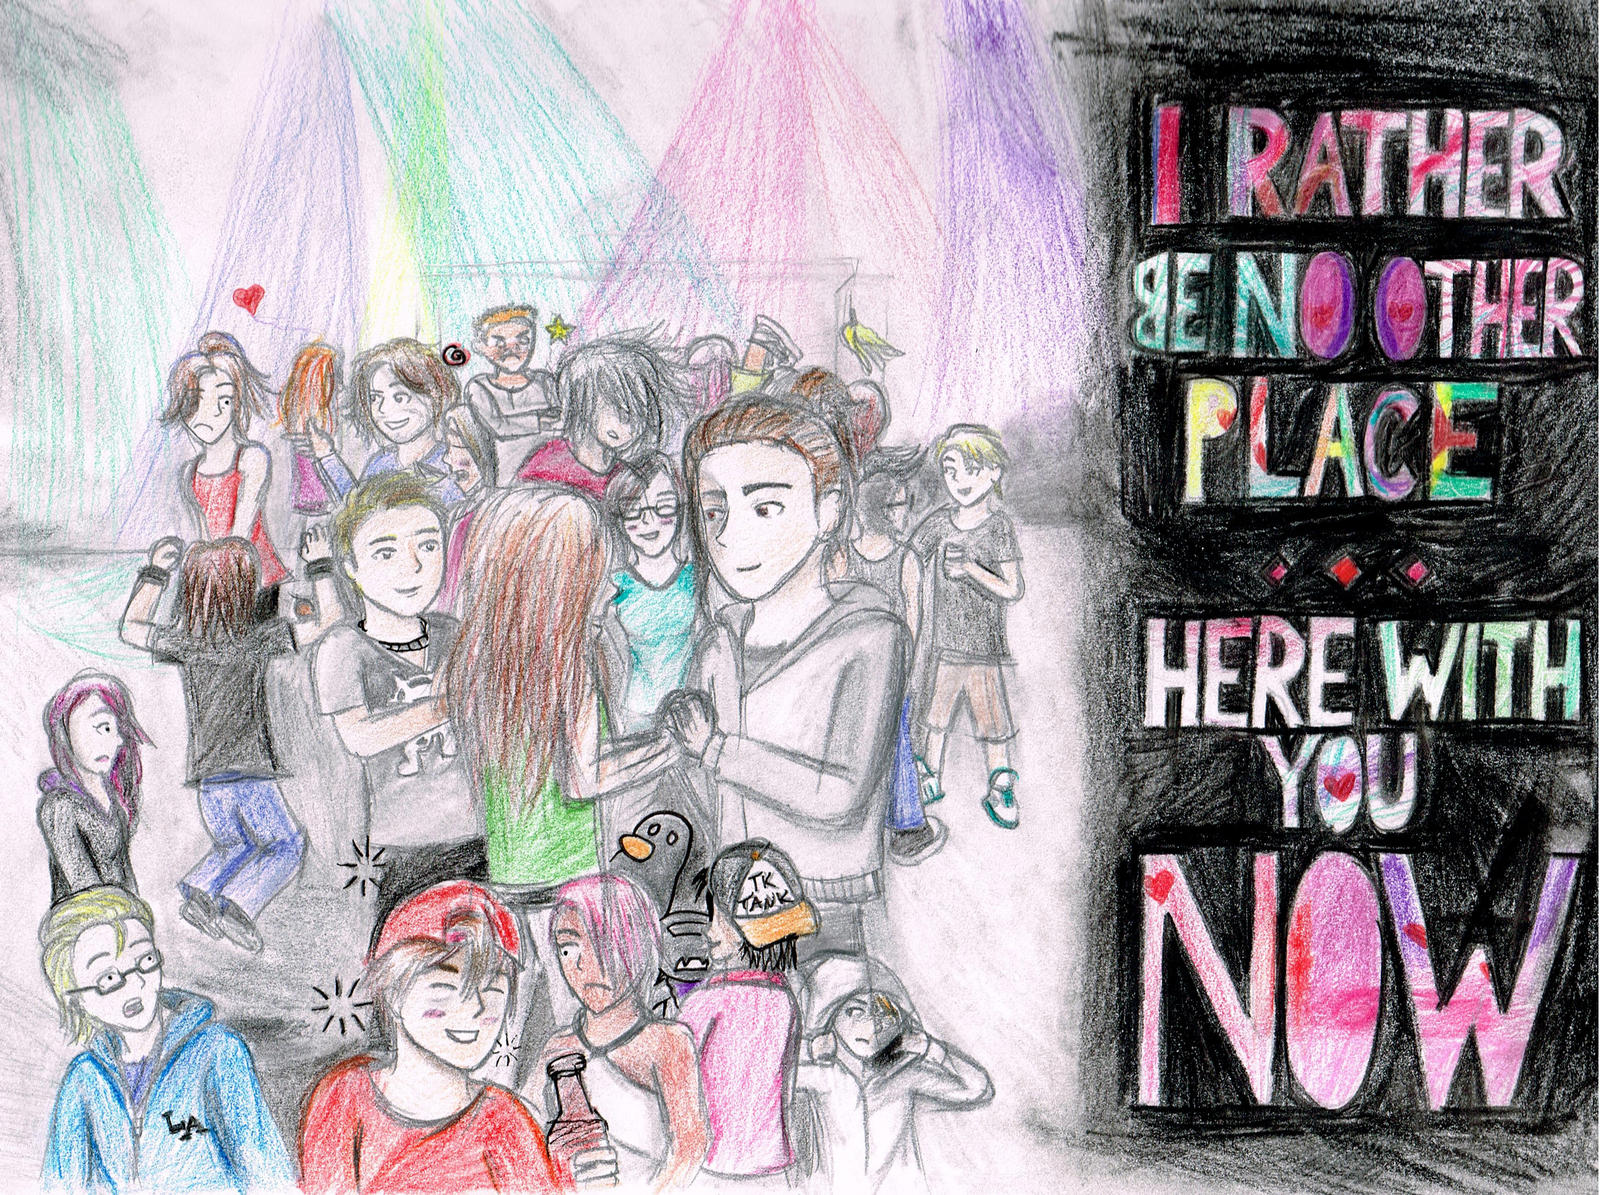 I Rather Be No Other Place... Here With You Now by iamthek3n